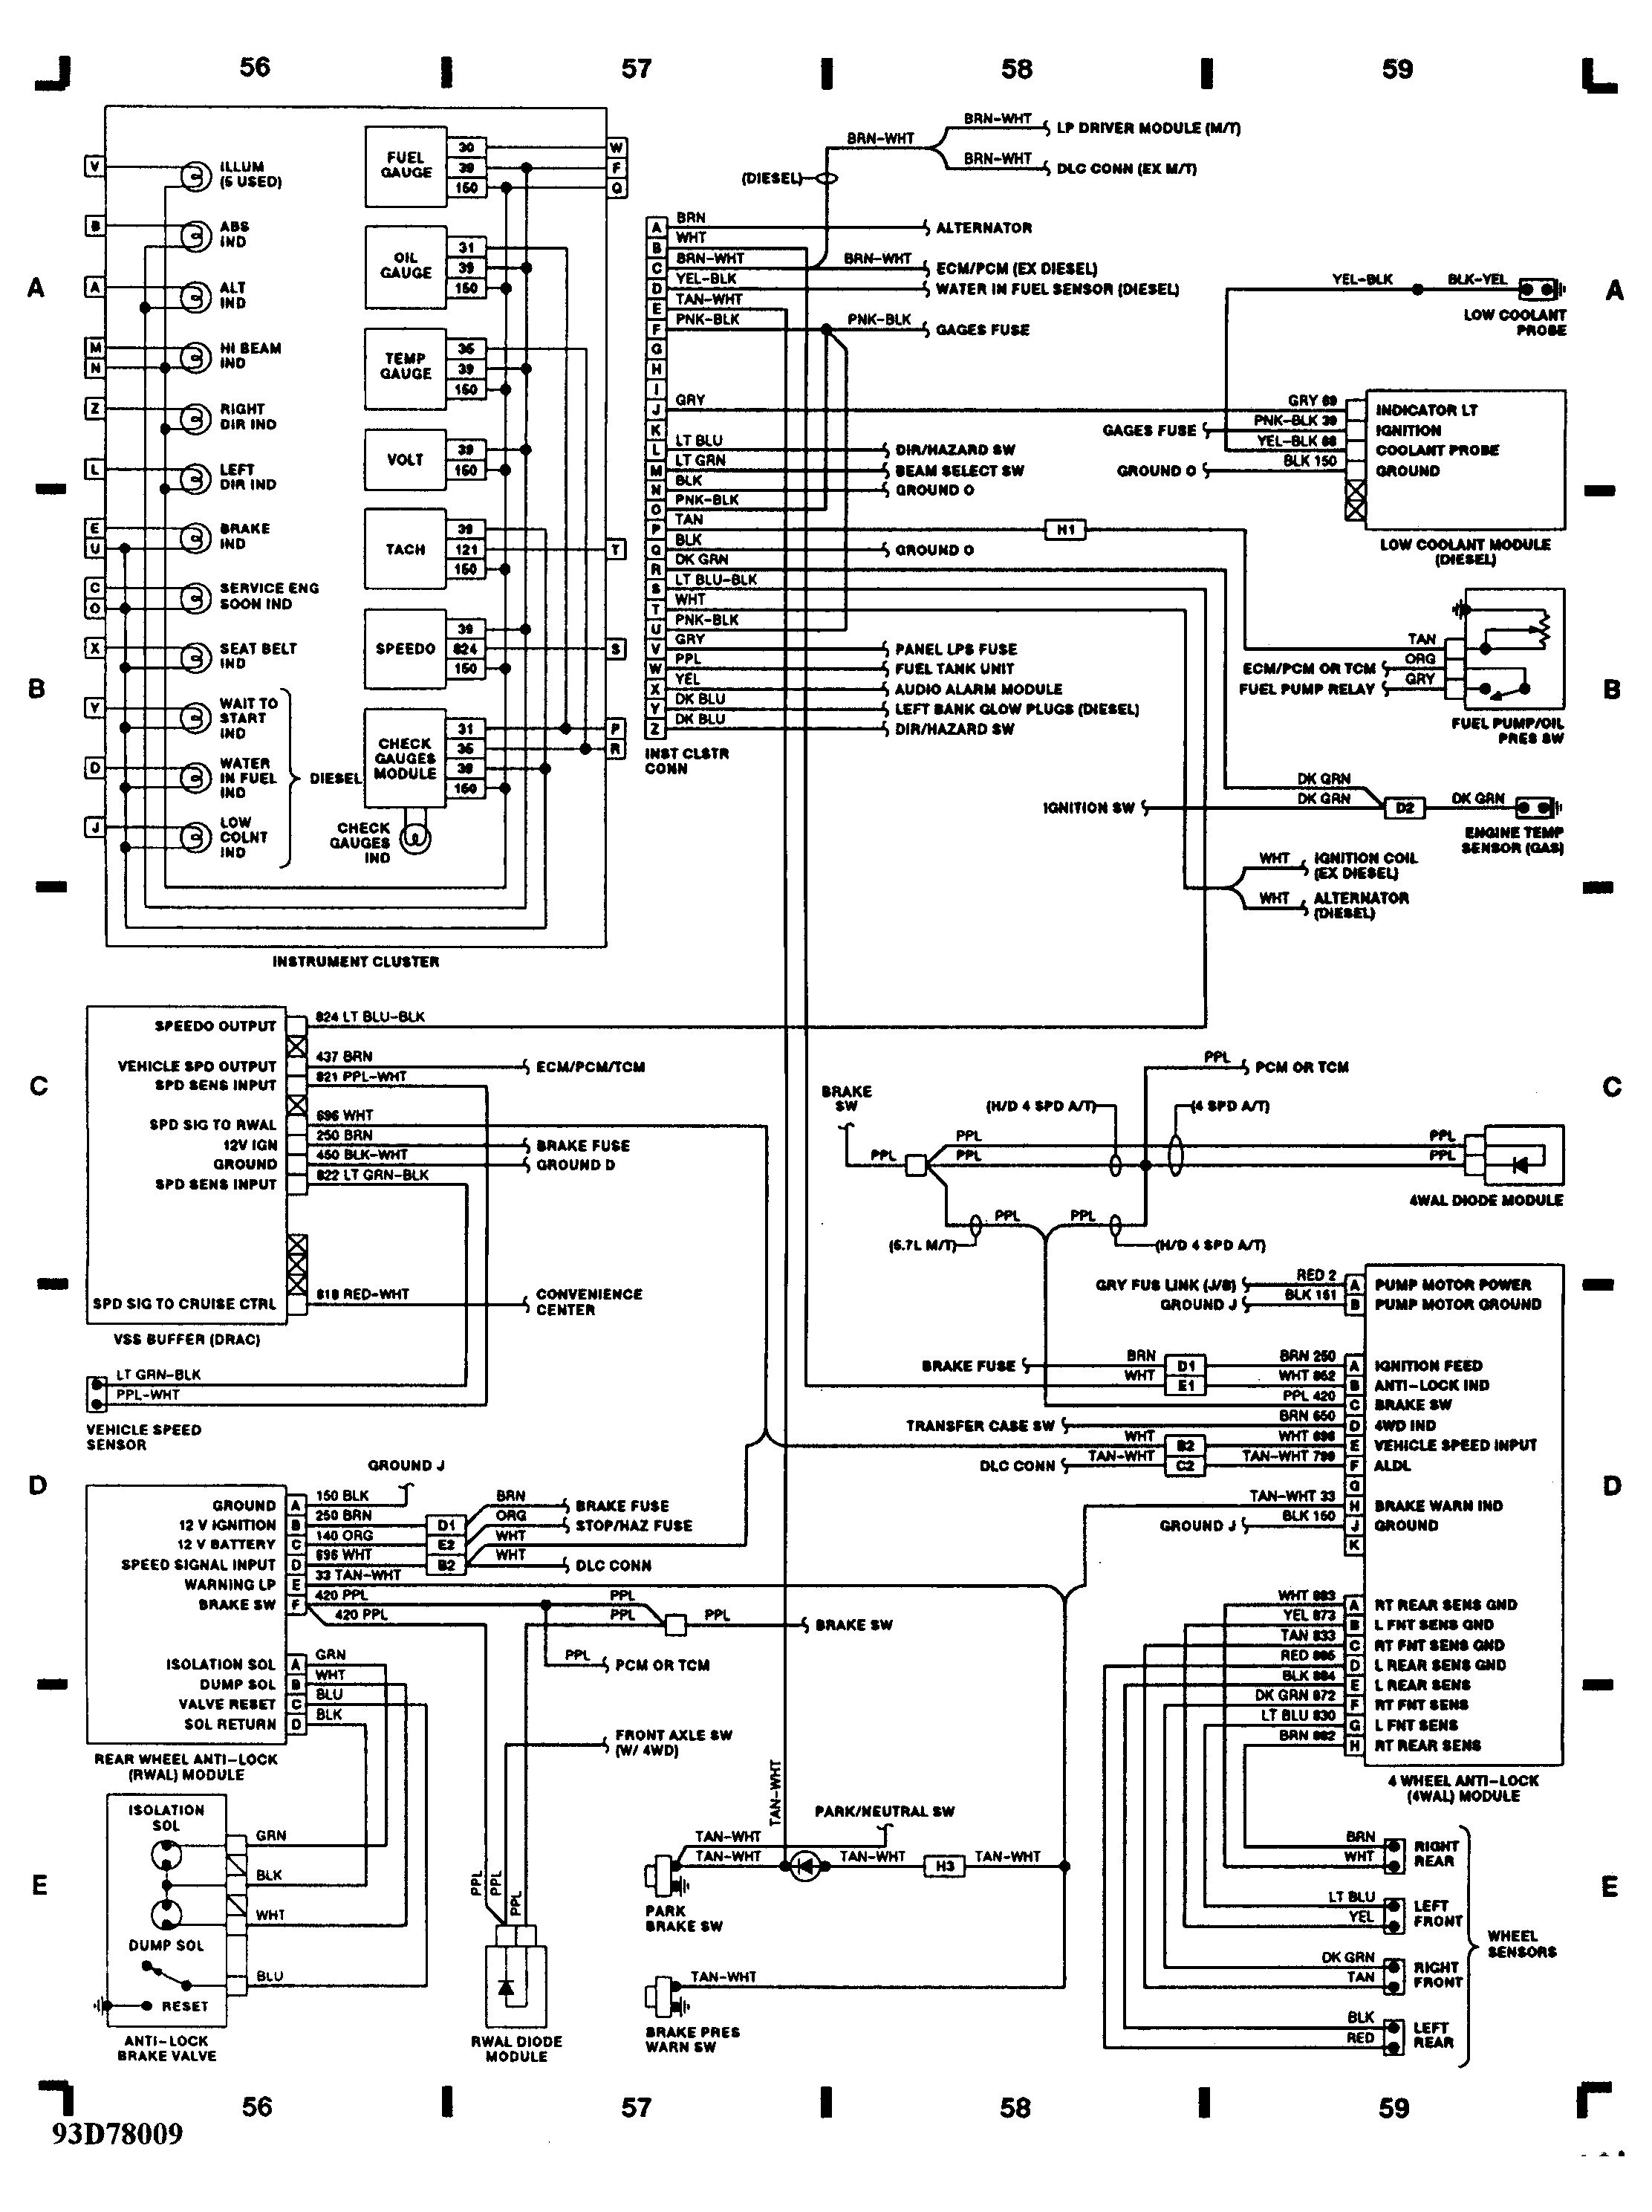 Peterbilt 385 Wiring Diagram